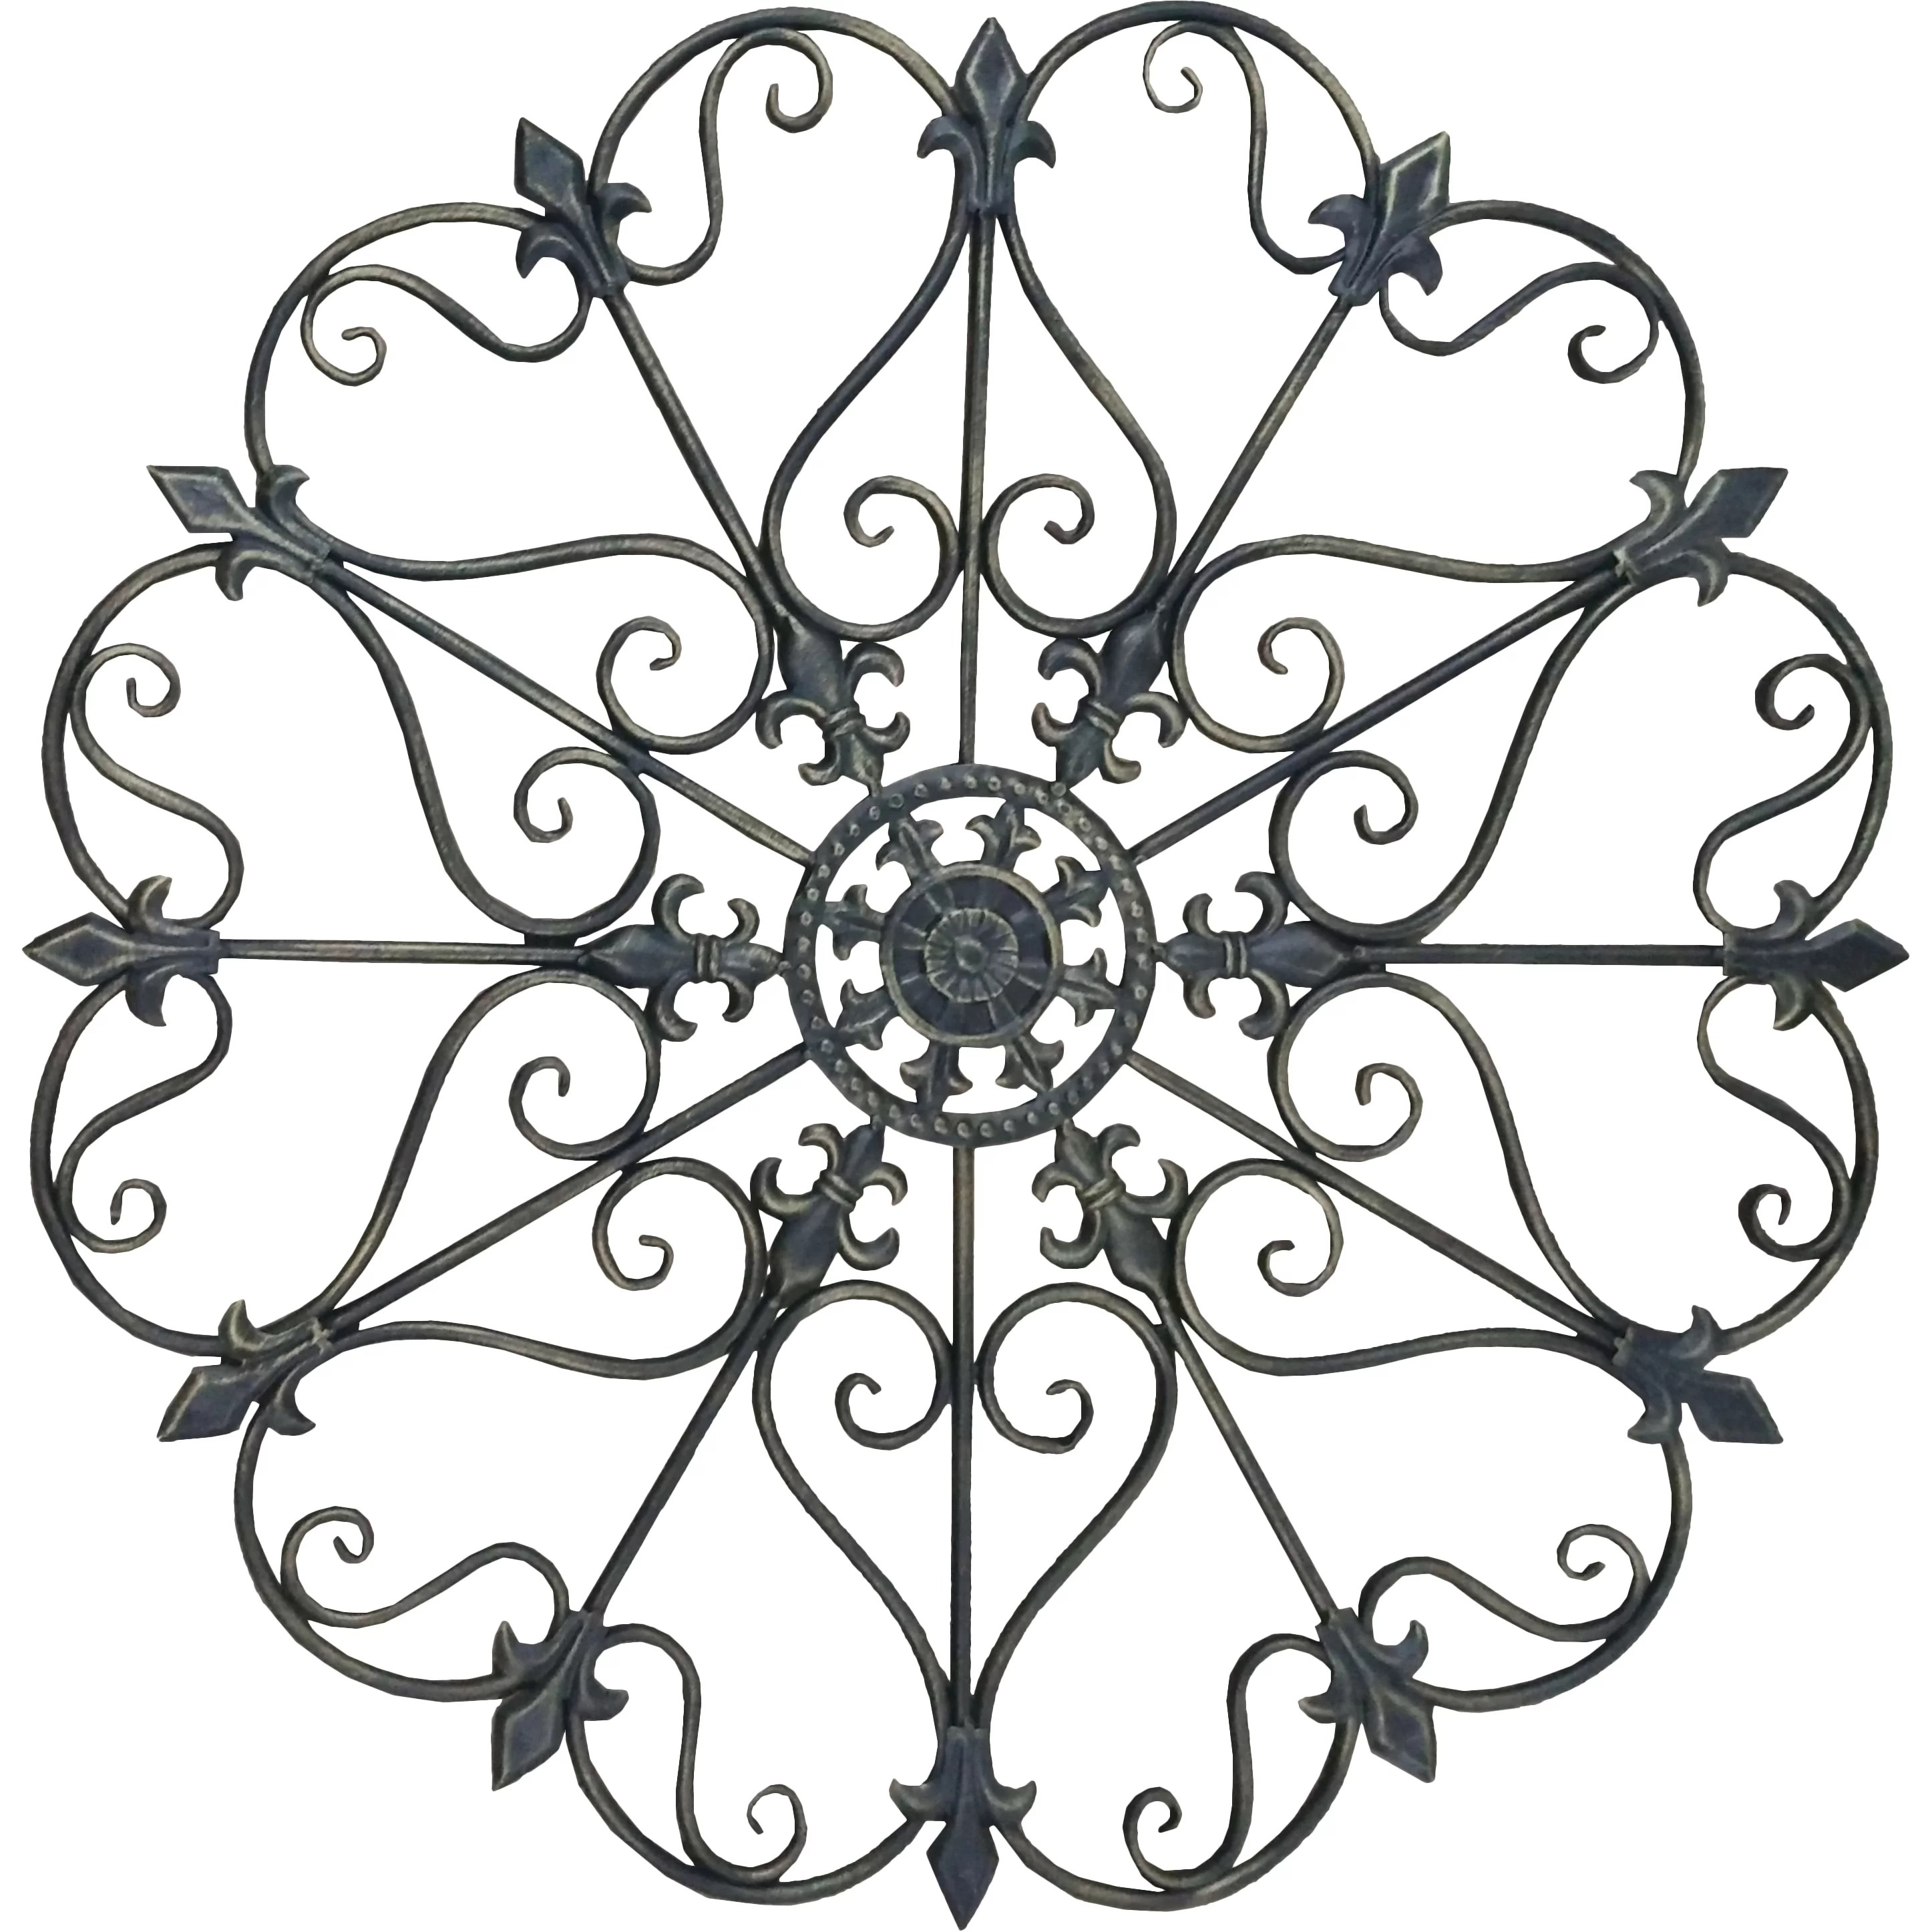 Rayes Imports Crafted Wrought Iron Wall Decor & Reviews